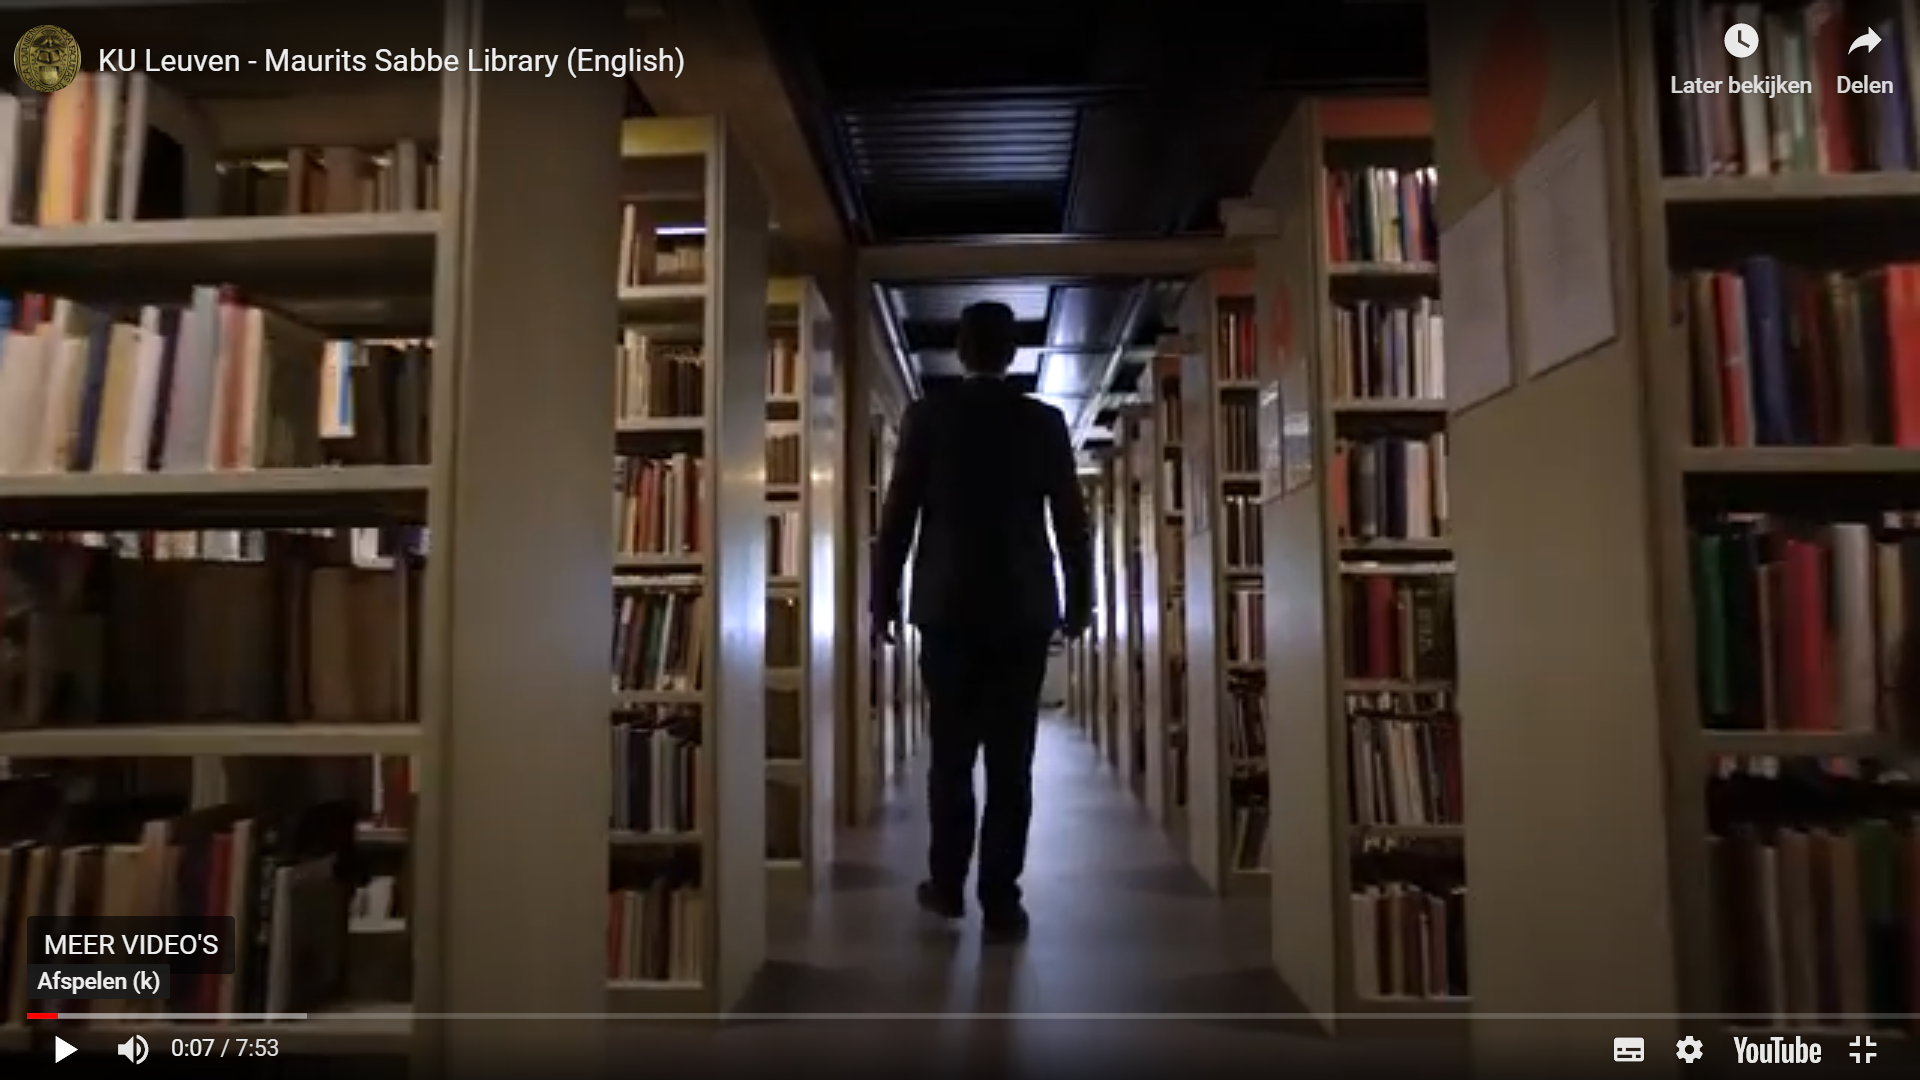 Maurits Sabbe Library Introduction Video